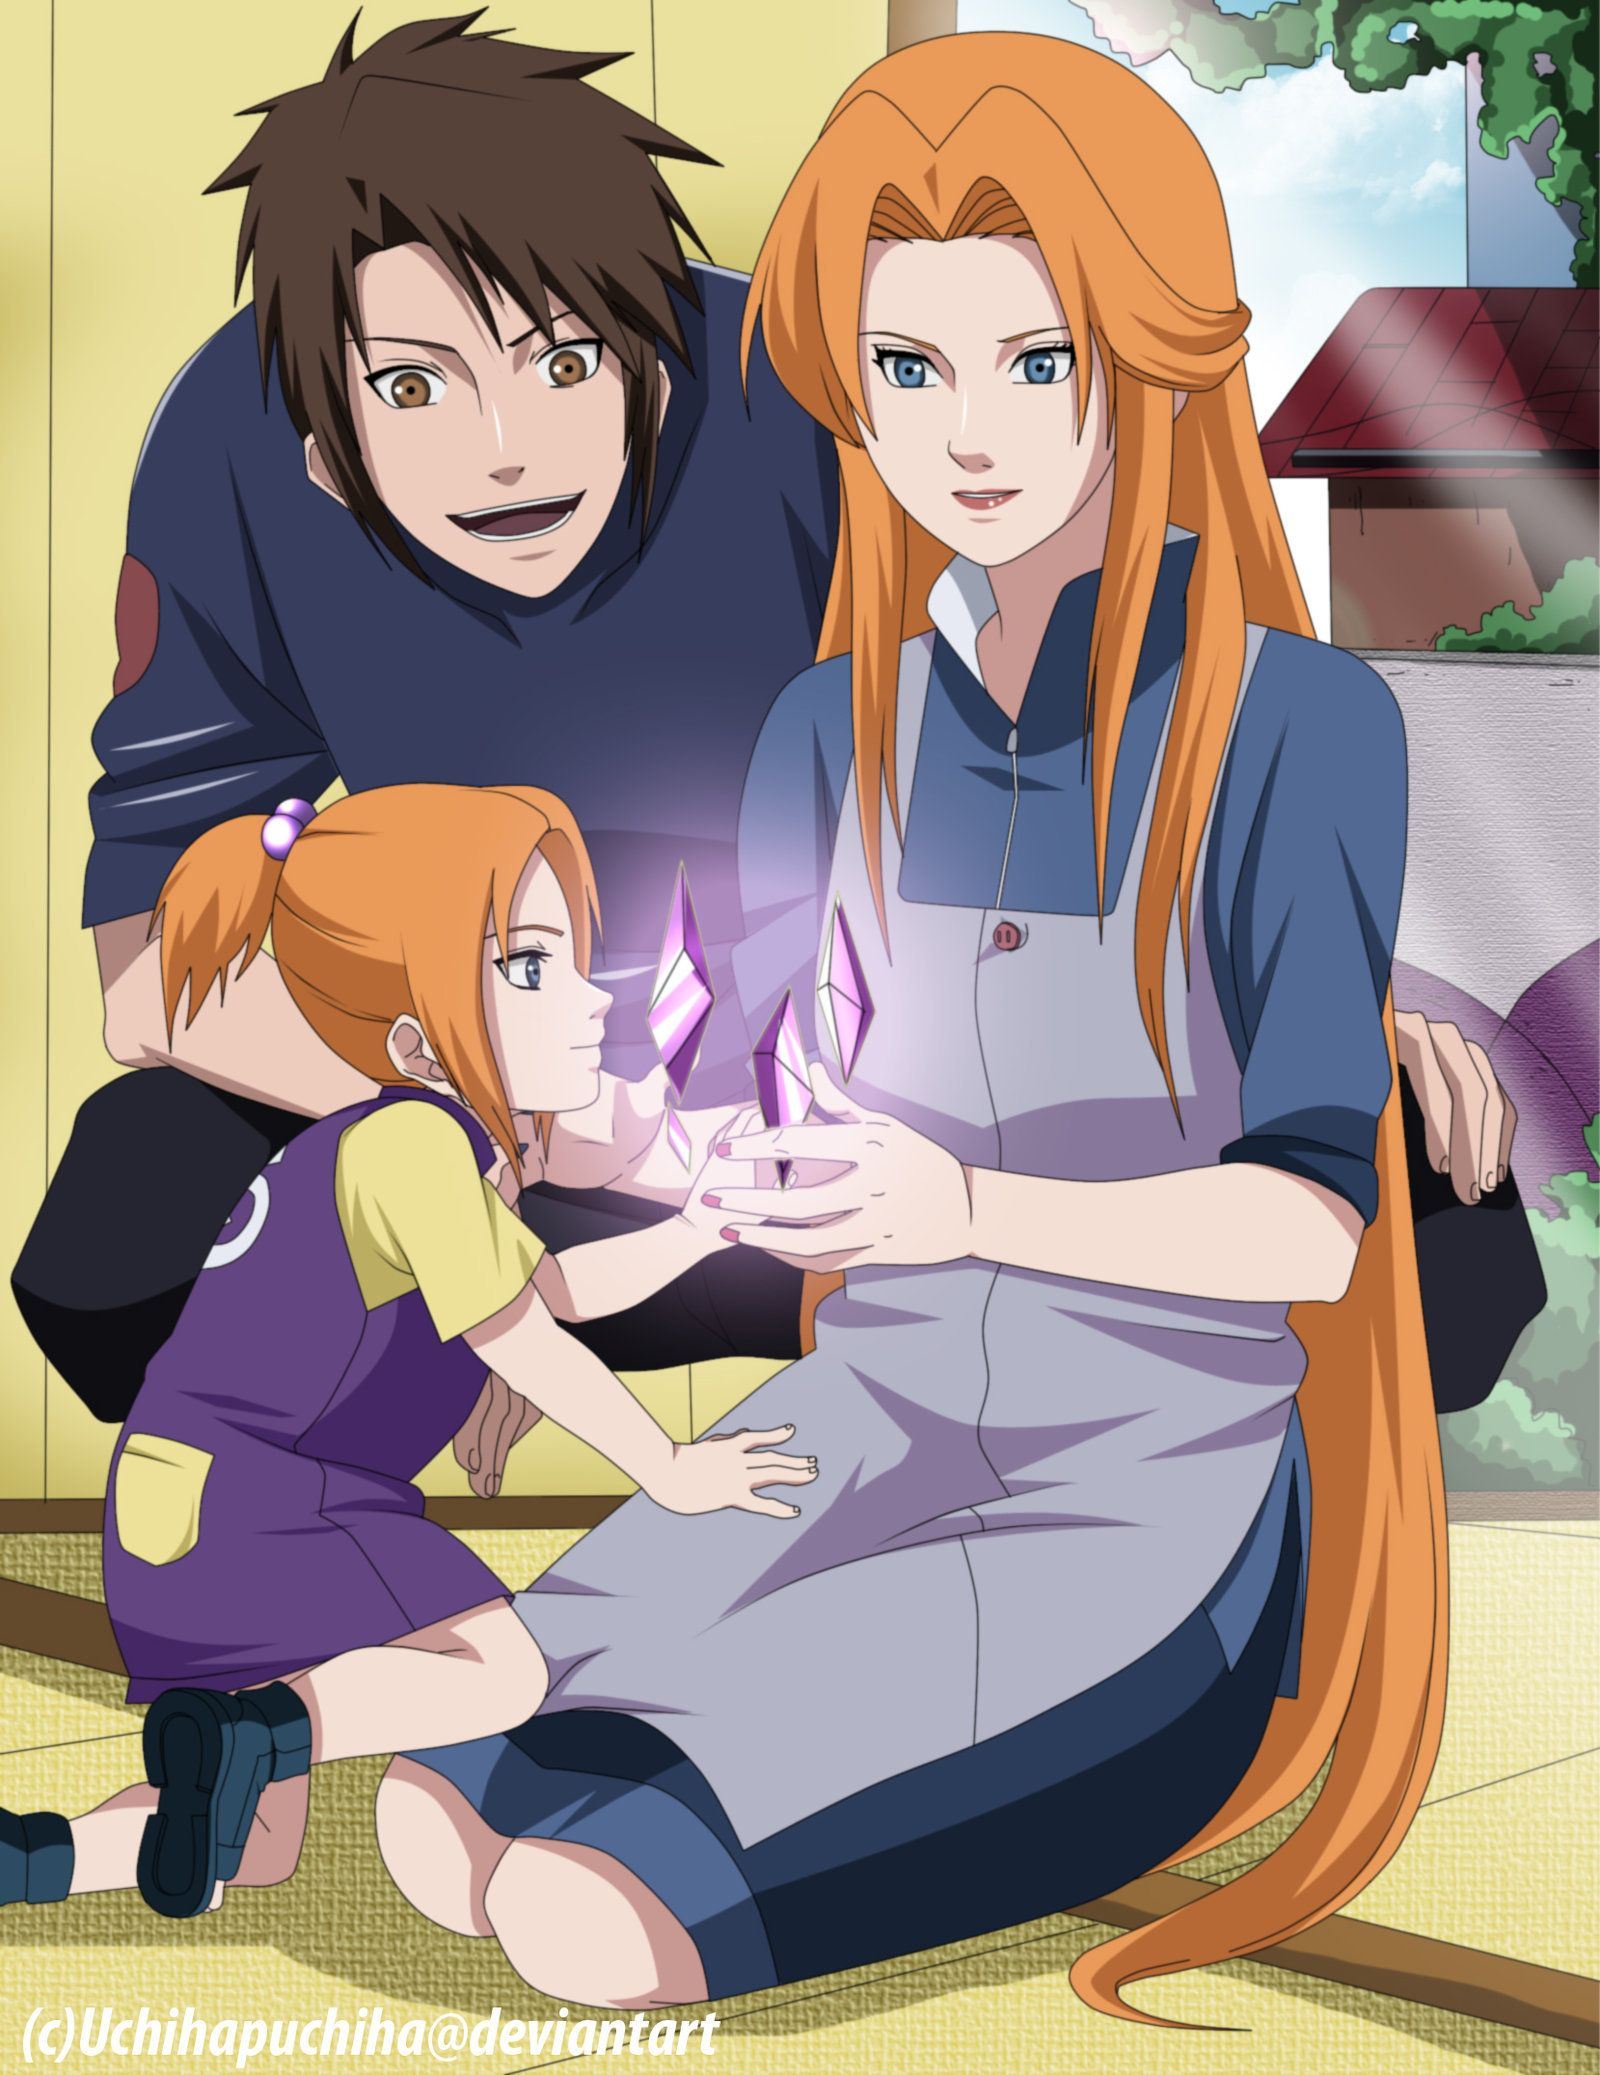 Shiawase no toki wa | Girls And Boys In Naruto | Pinterest ...